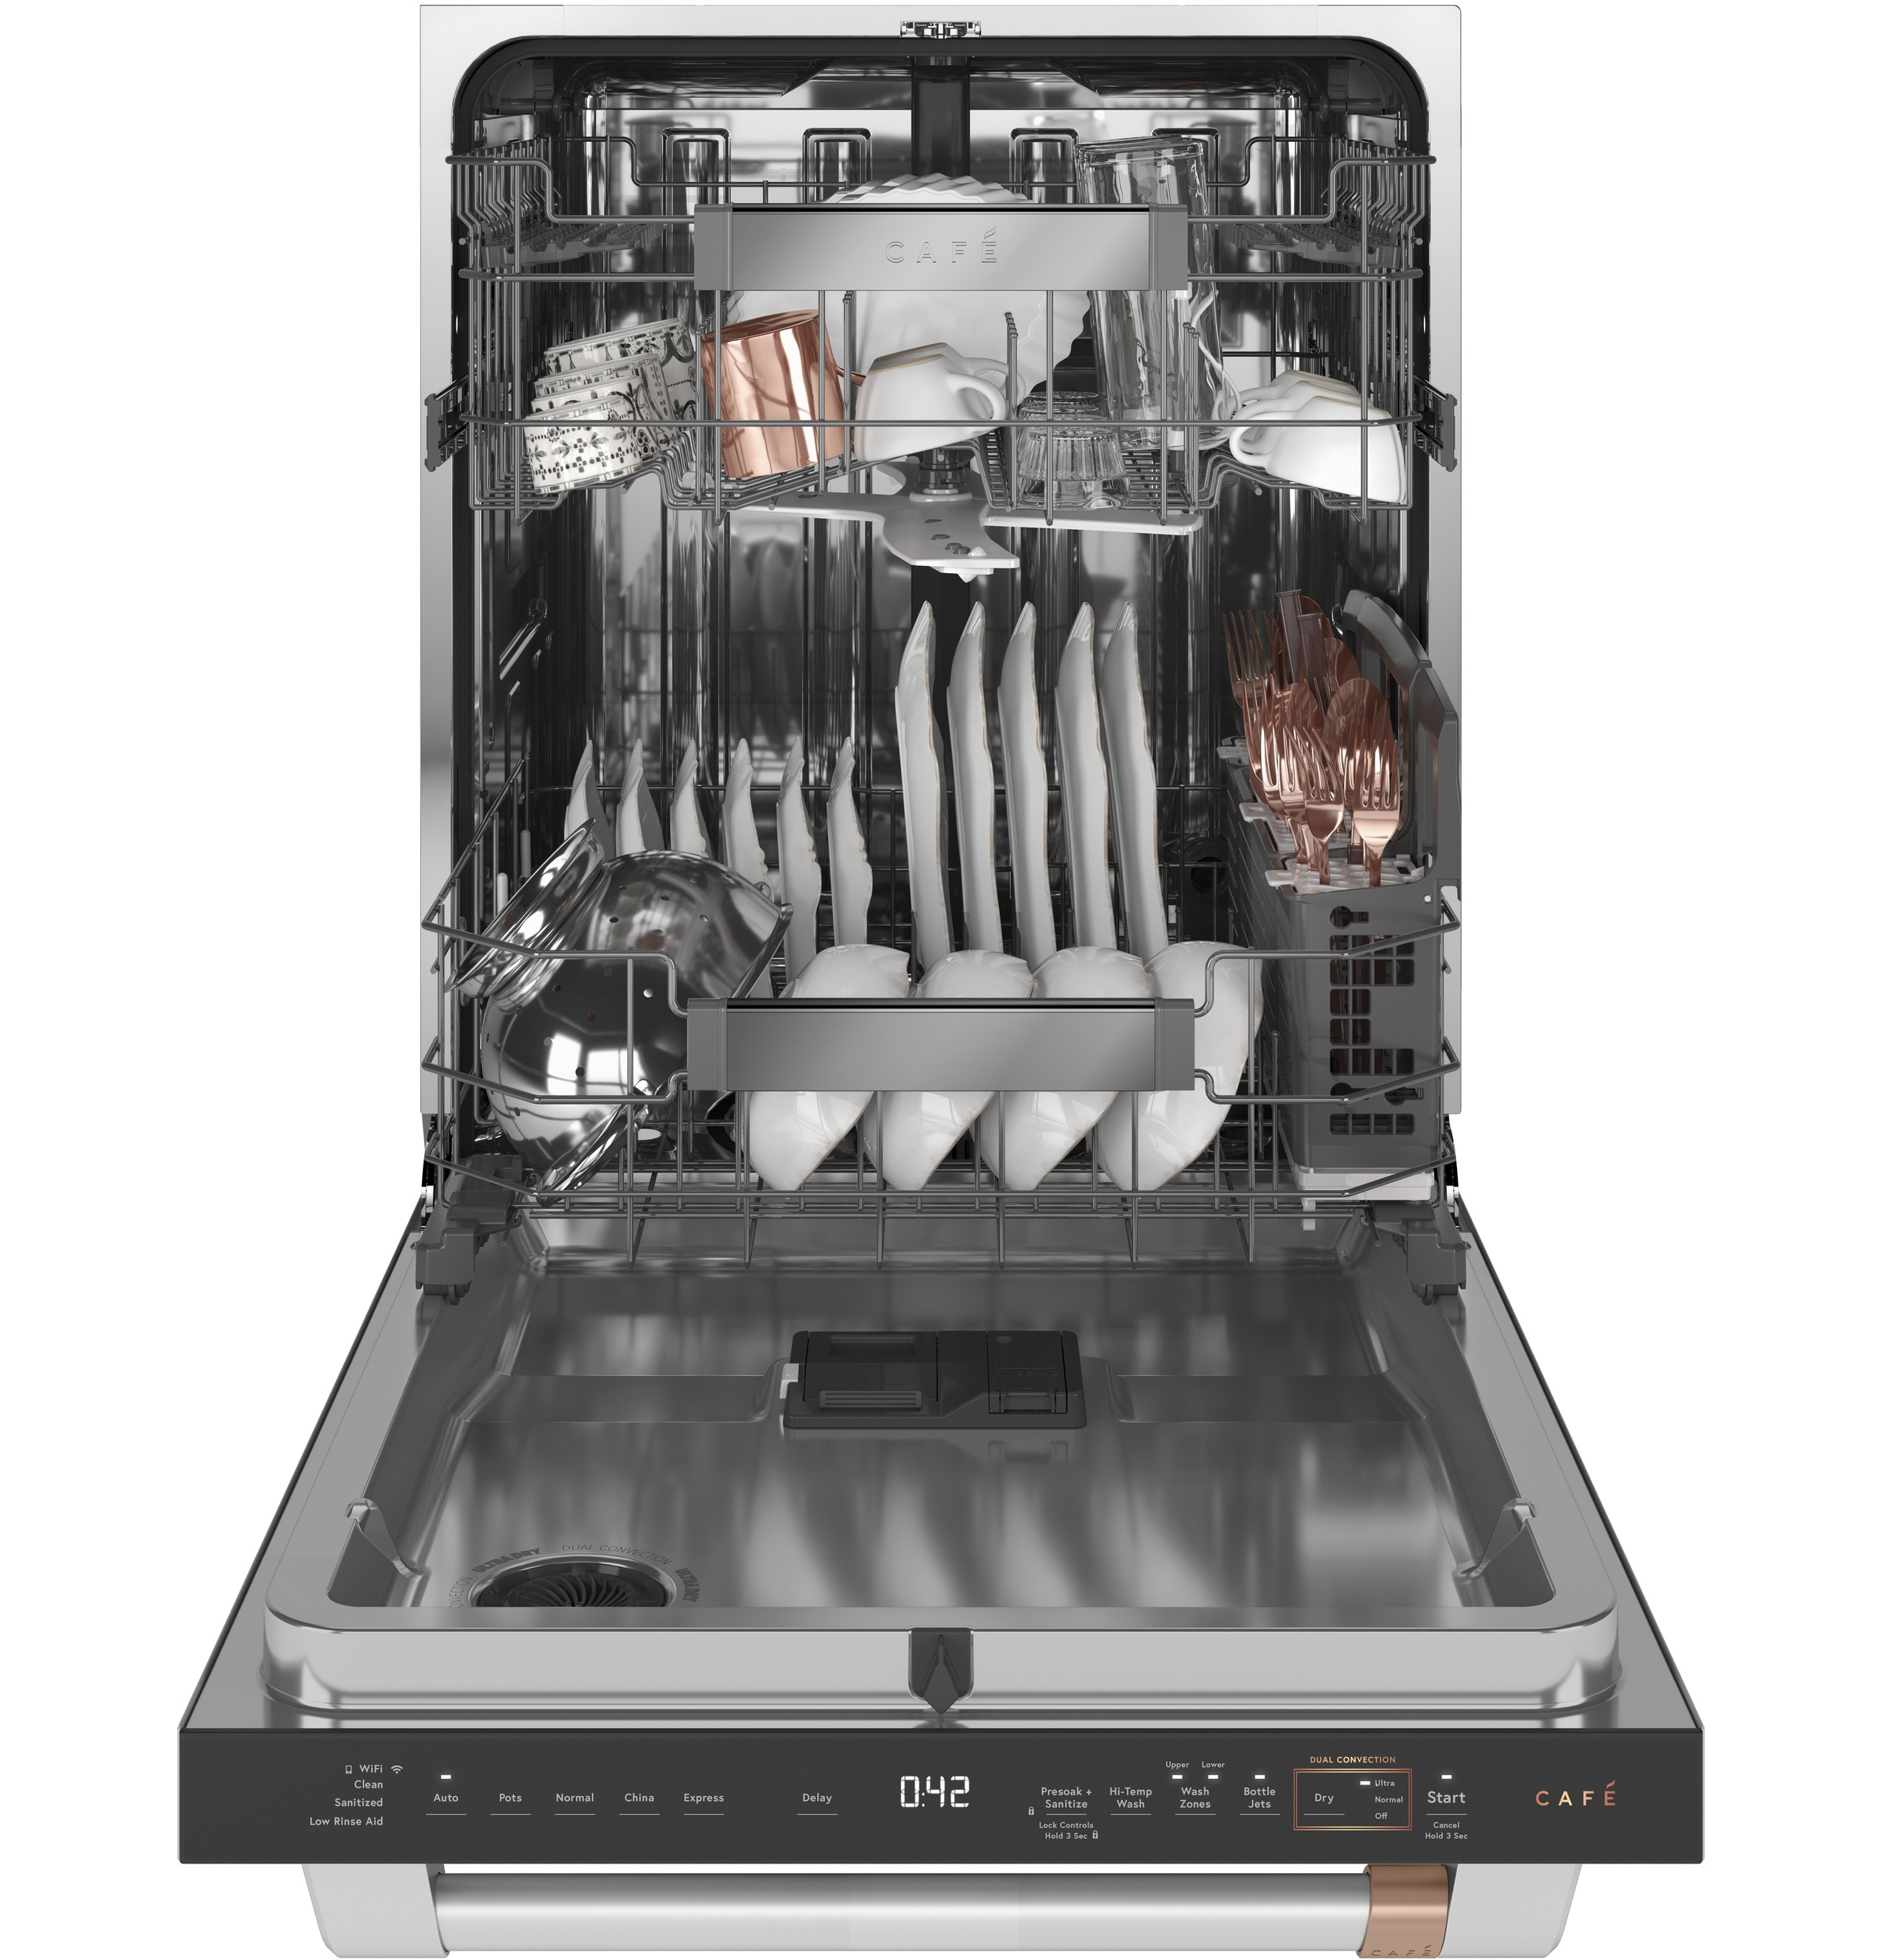 Model: CDT855P2NS1 | Cafe Café™ Smart Stainless Steel Interior Dishwasher with Sanitize and Ultra Wash & Dual Convection Ultra Dry